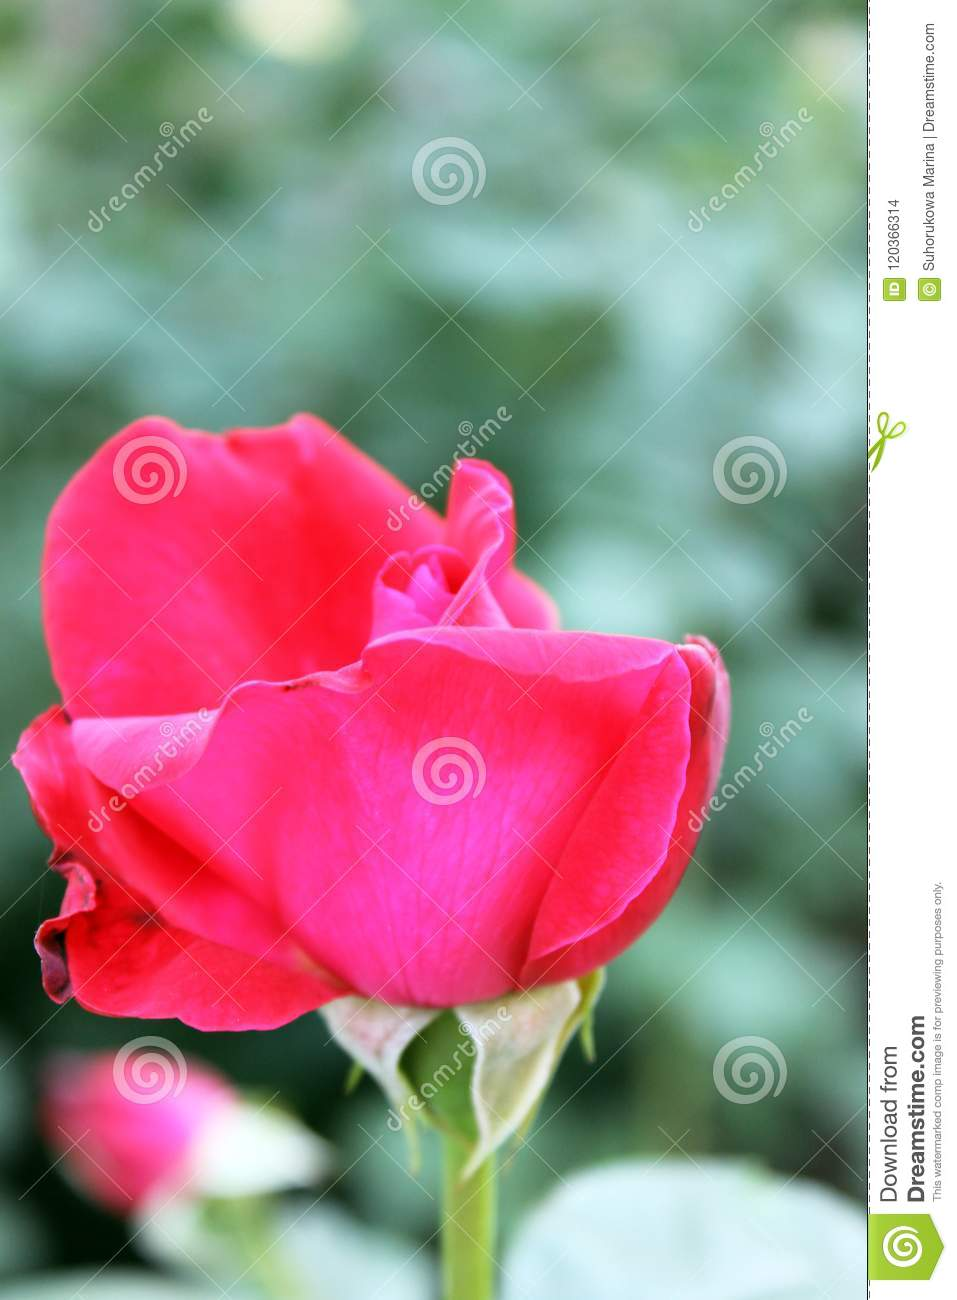 Beautiful rose flower backgrounds stock photo image of decoration beautiful backgrounds of flowers roses yellow pink alleys of roses izmirmasajfo